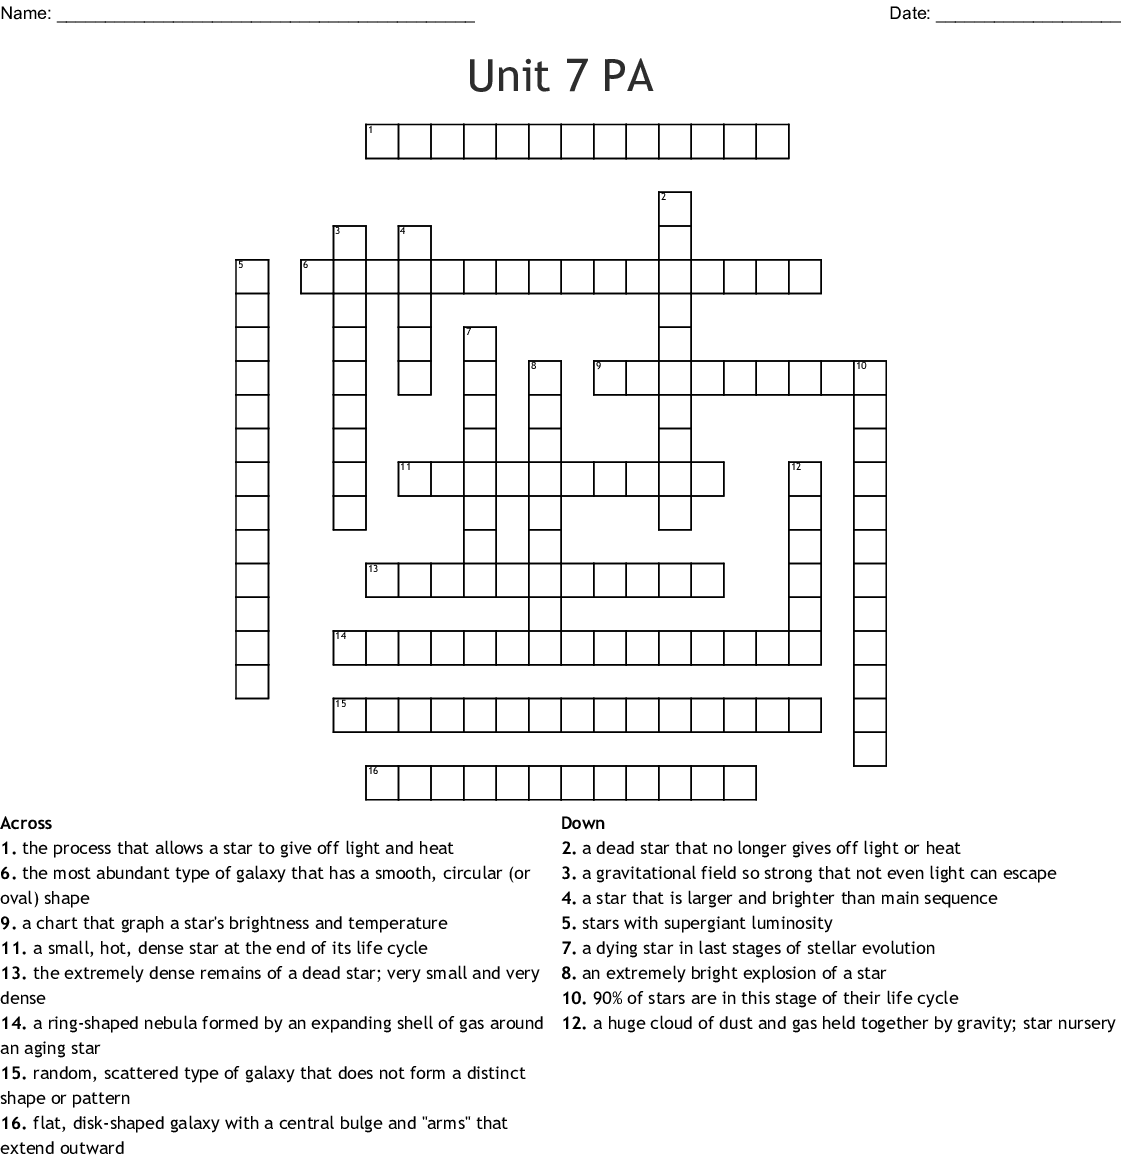 Unit 7 Pa Crossword